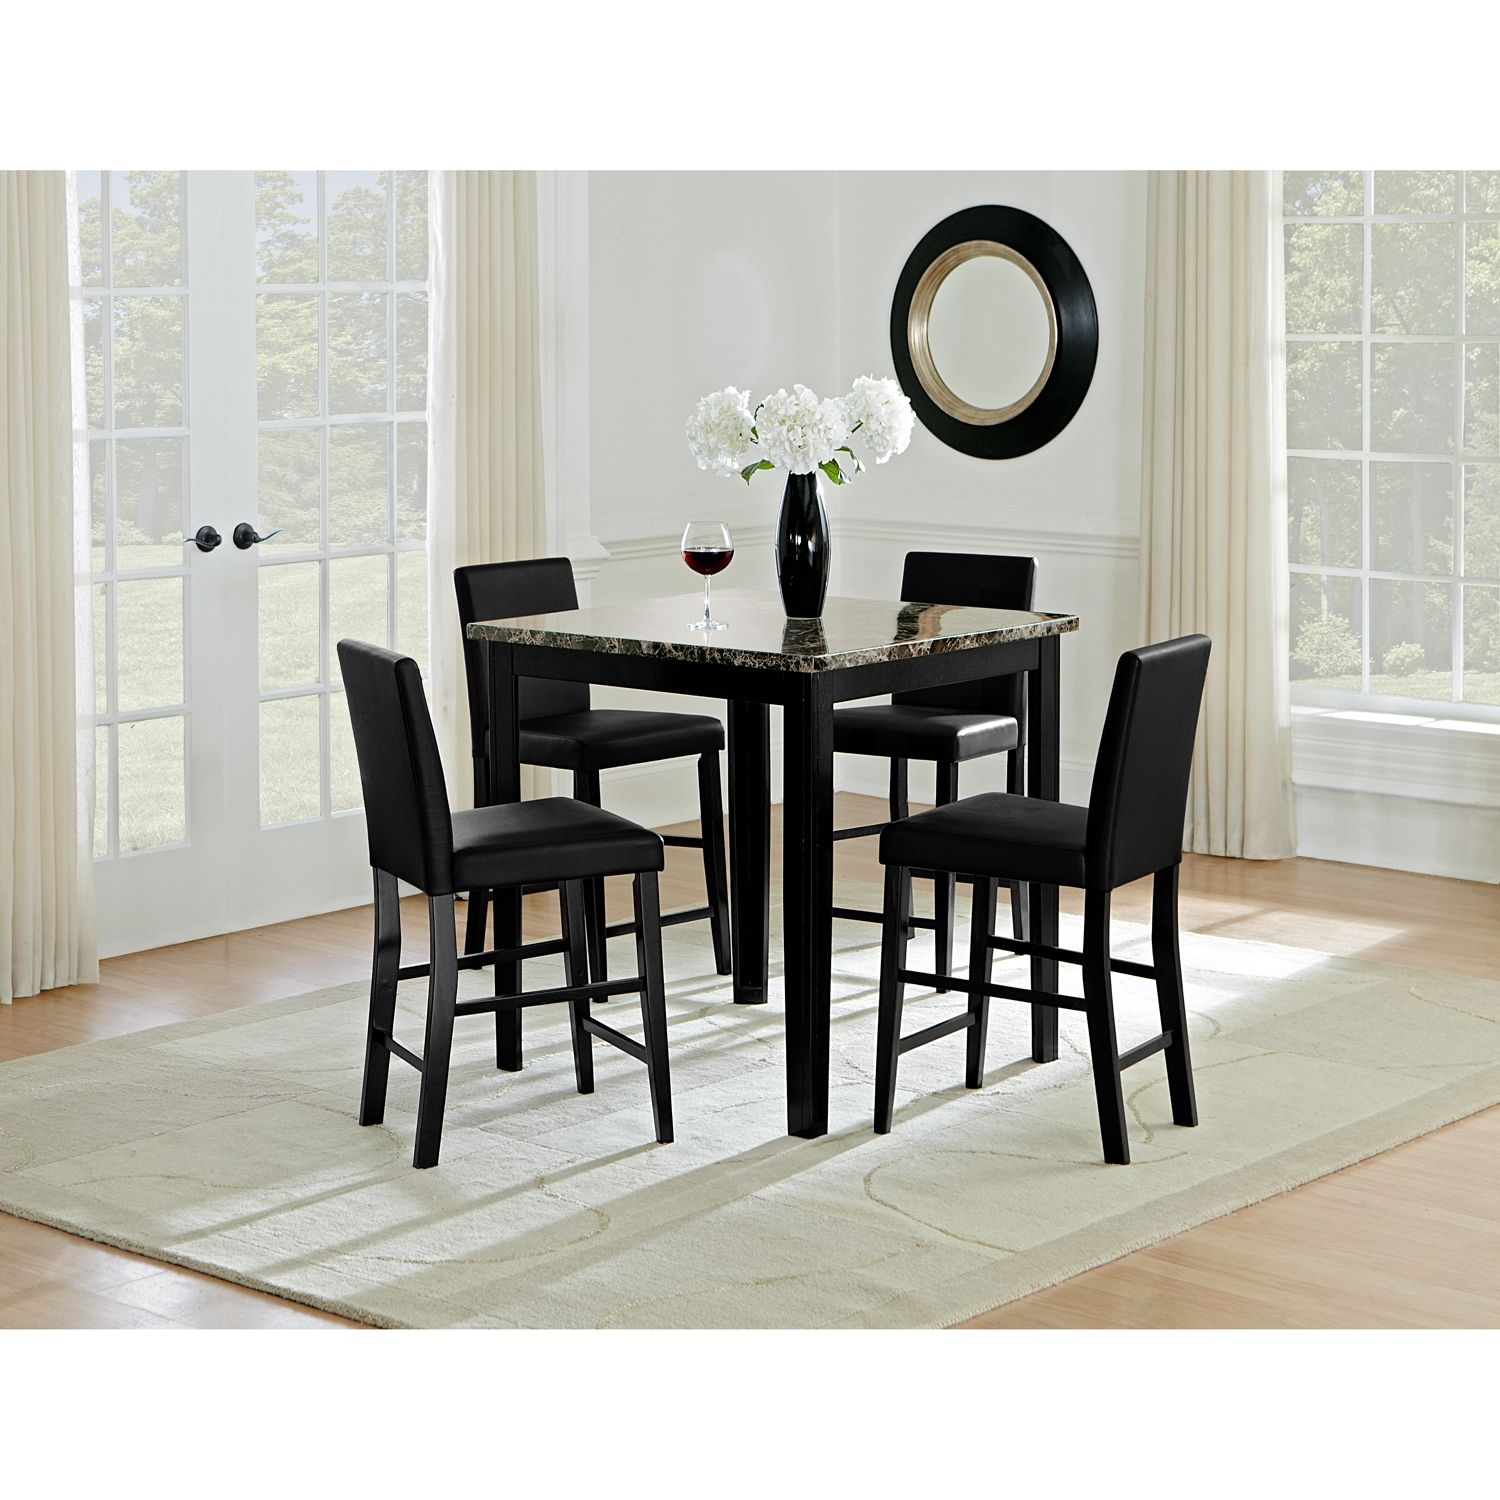 Shadow Counter Height Dining Table And 4 Dining Chairs In 2020 Dining Room Design Dining Room Table Dining Room Table Chairs